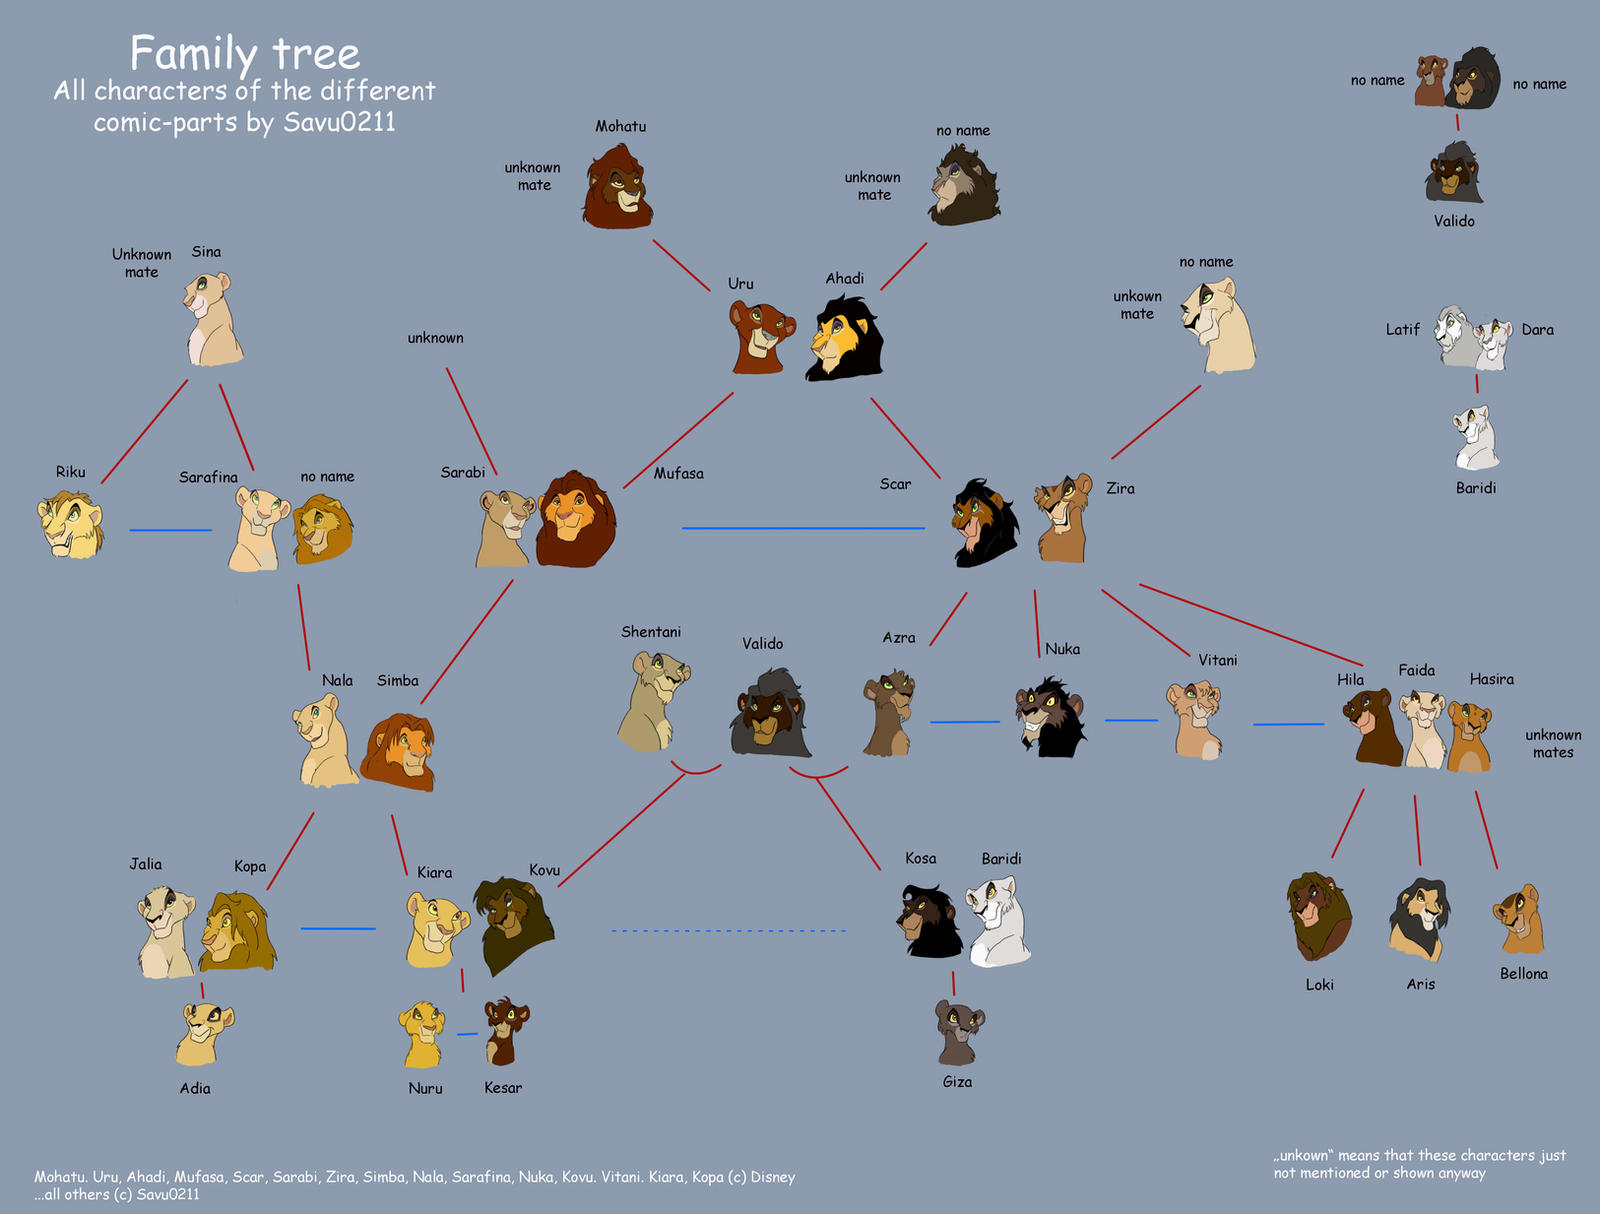 Family Tree Of All Characters By Savu0211 On Deviantart